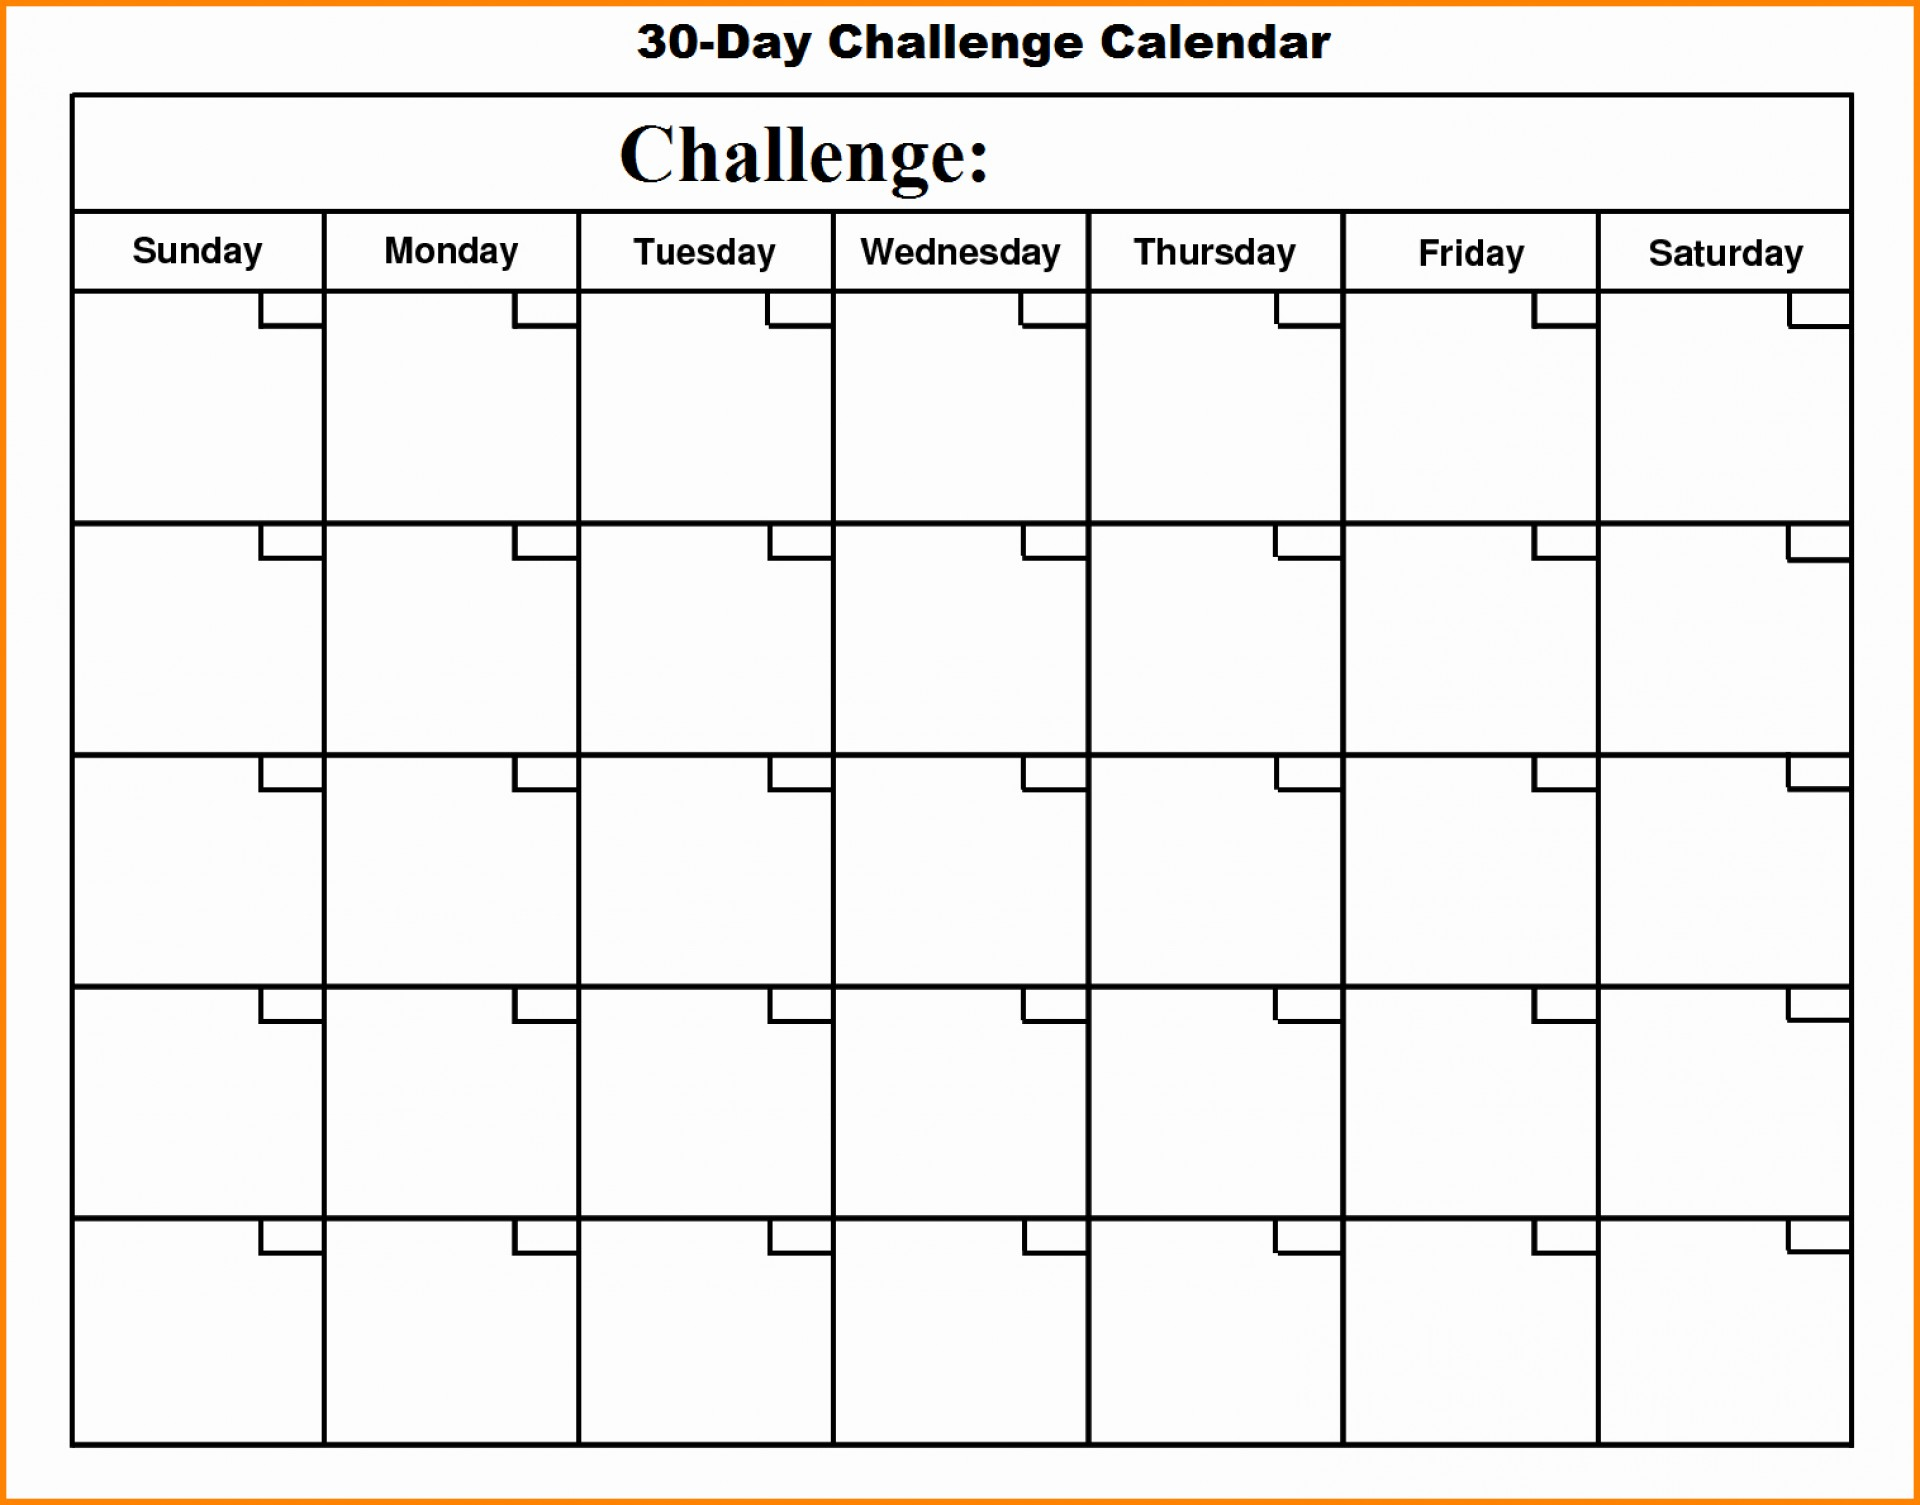 001 Template Ideas Day Dreaded 30 Calendar Pdf Challenge with Free Printable 30 Day Calendar